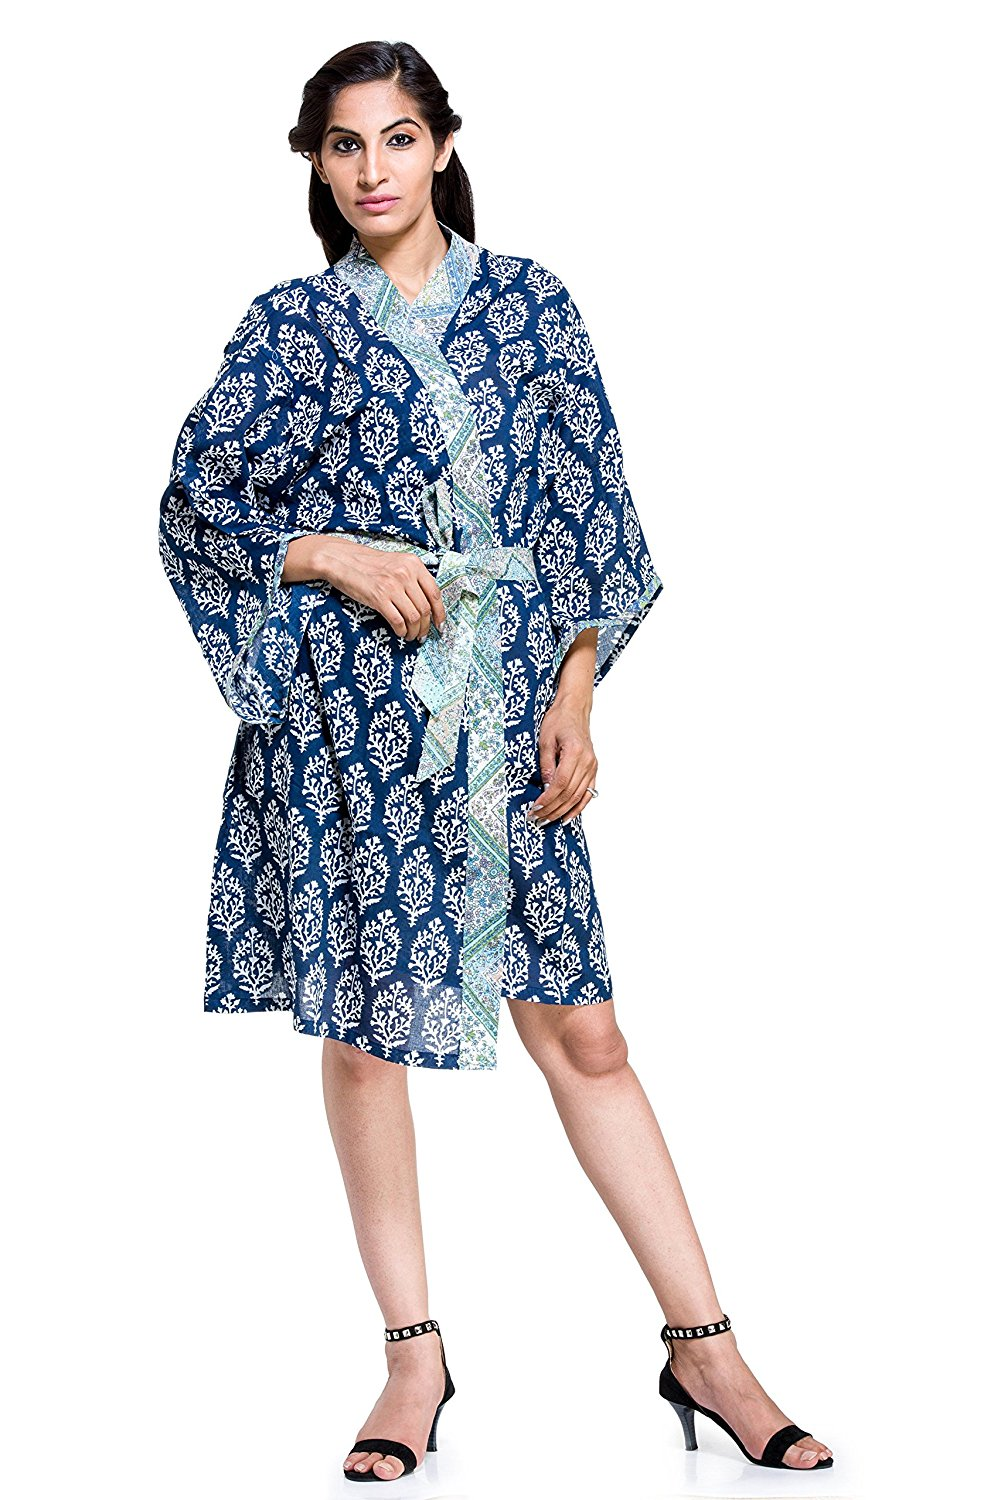 787c980661 Get Quotations · Womens Ladies Floral Dressing Gown Robe Indian Cotton  Nighwear Lingerie dress